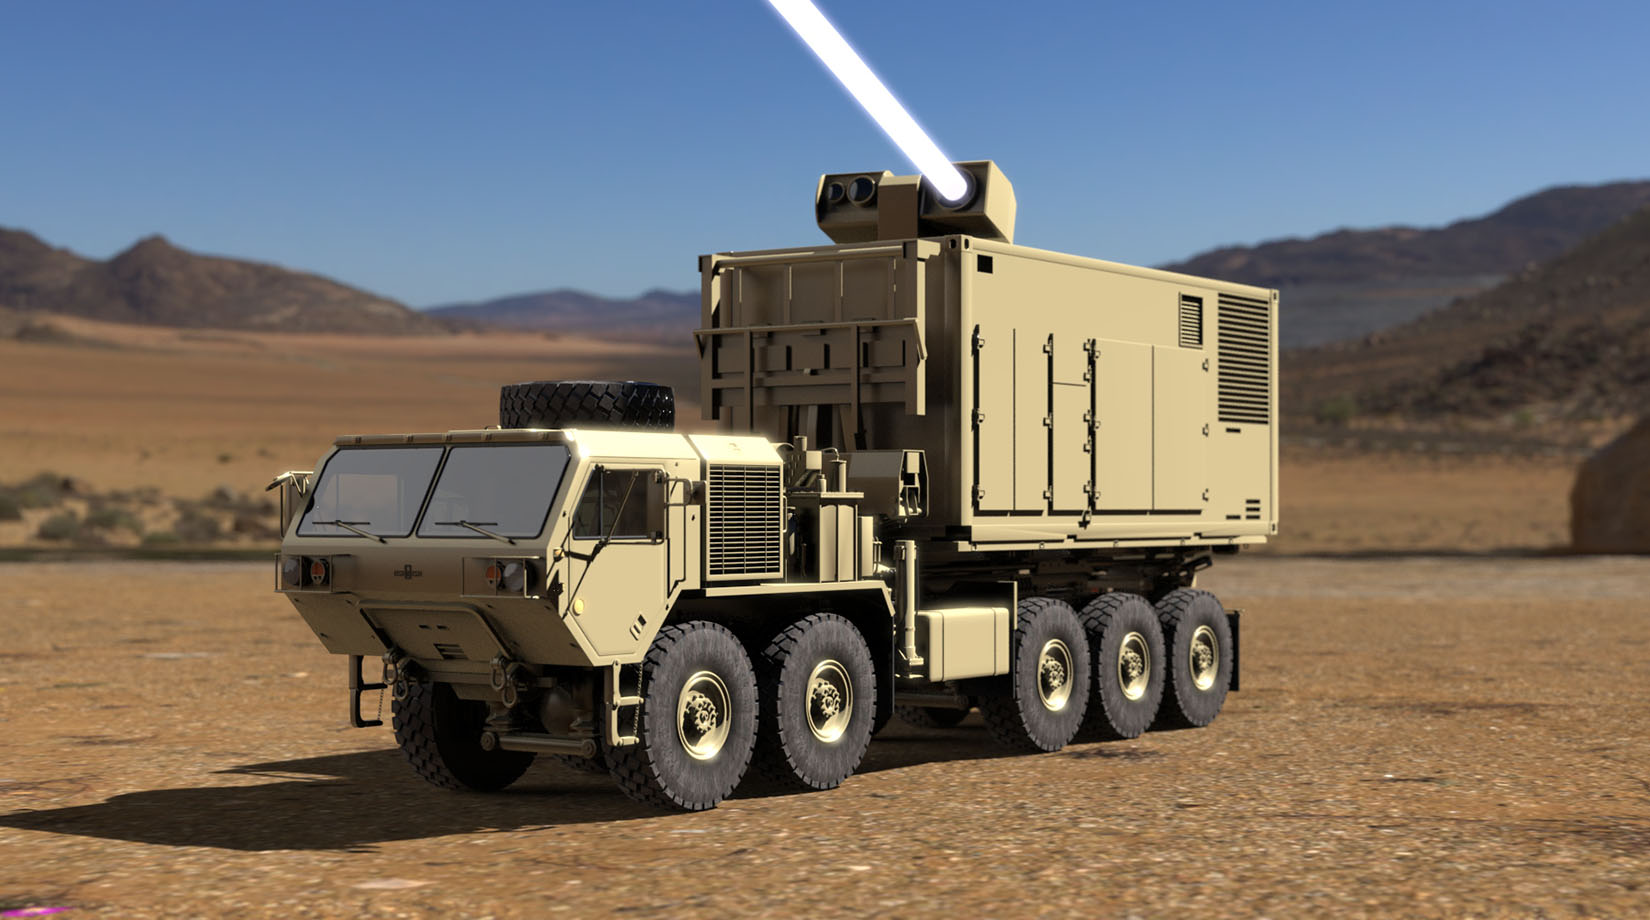 Team Dynetics Receives Contract for Next Phase of 100 kW-Class Laser Weapon System for U.S. Army thumbnail image